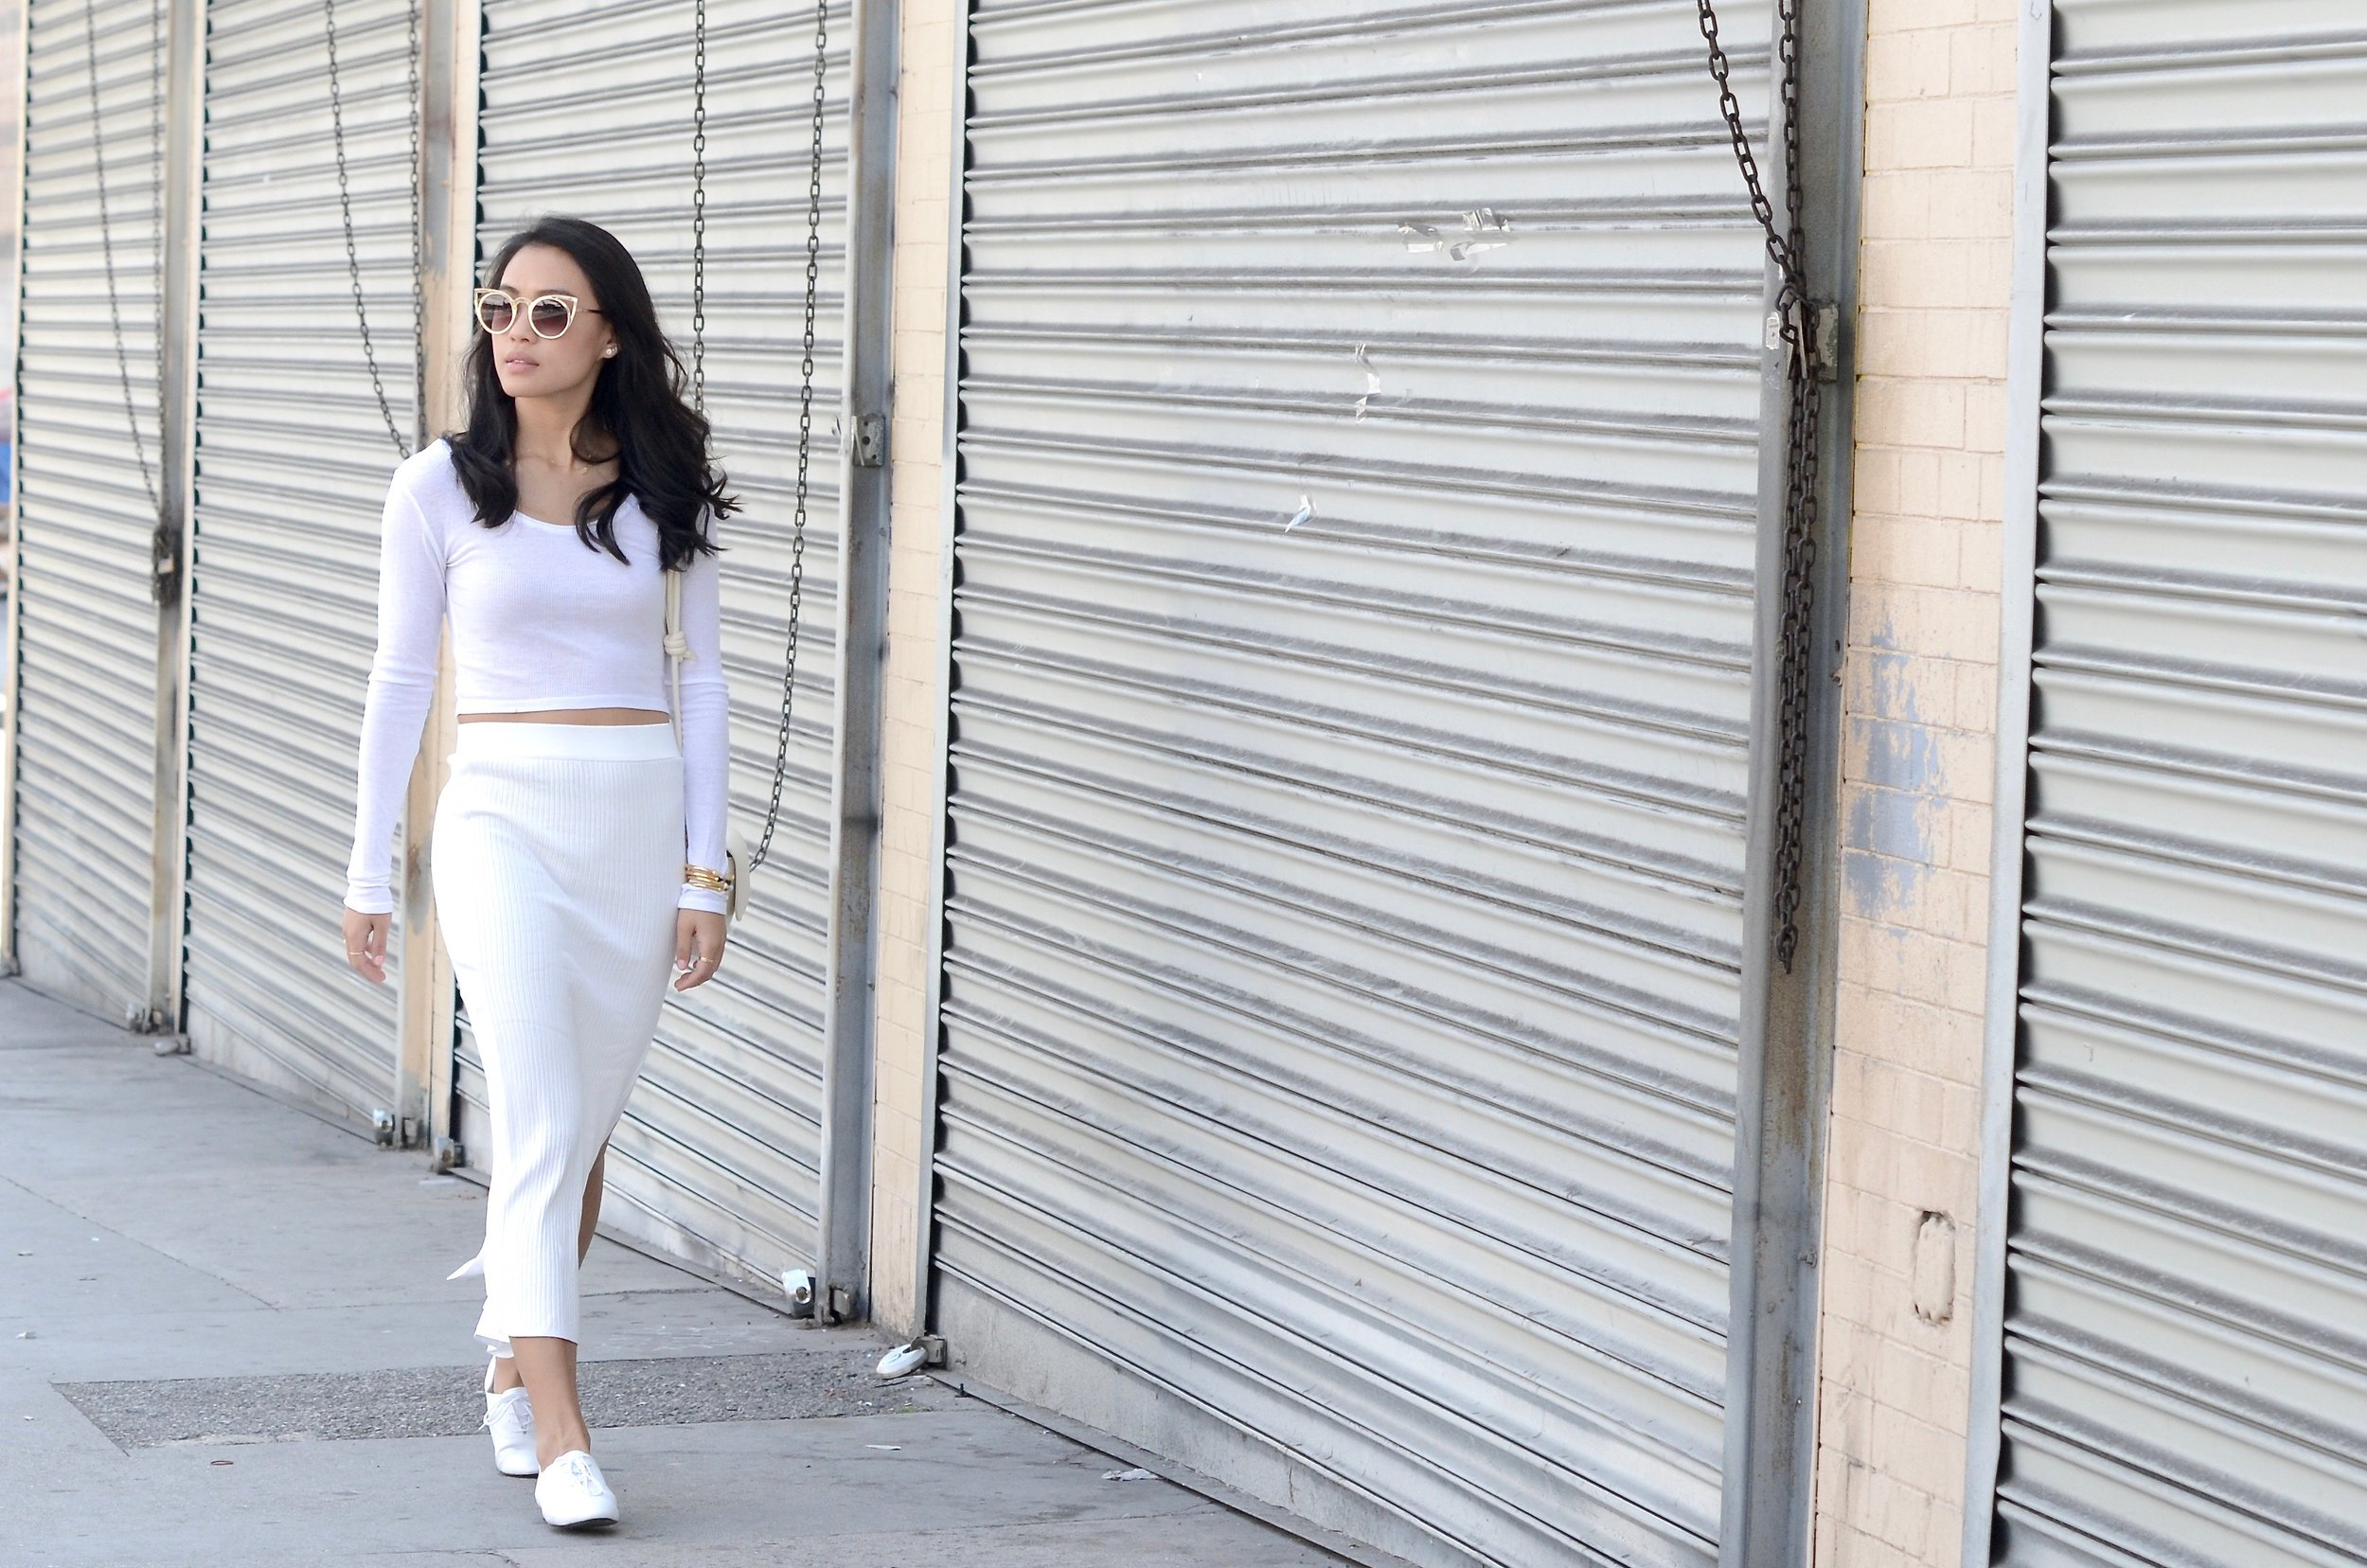 Just Goh With It-Outfits-All-White-Knits-Crop-Topshop-Zara-Oxfords-1.jpg